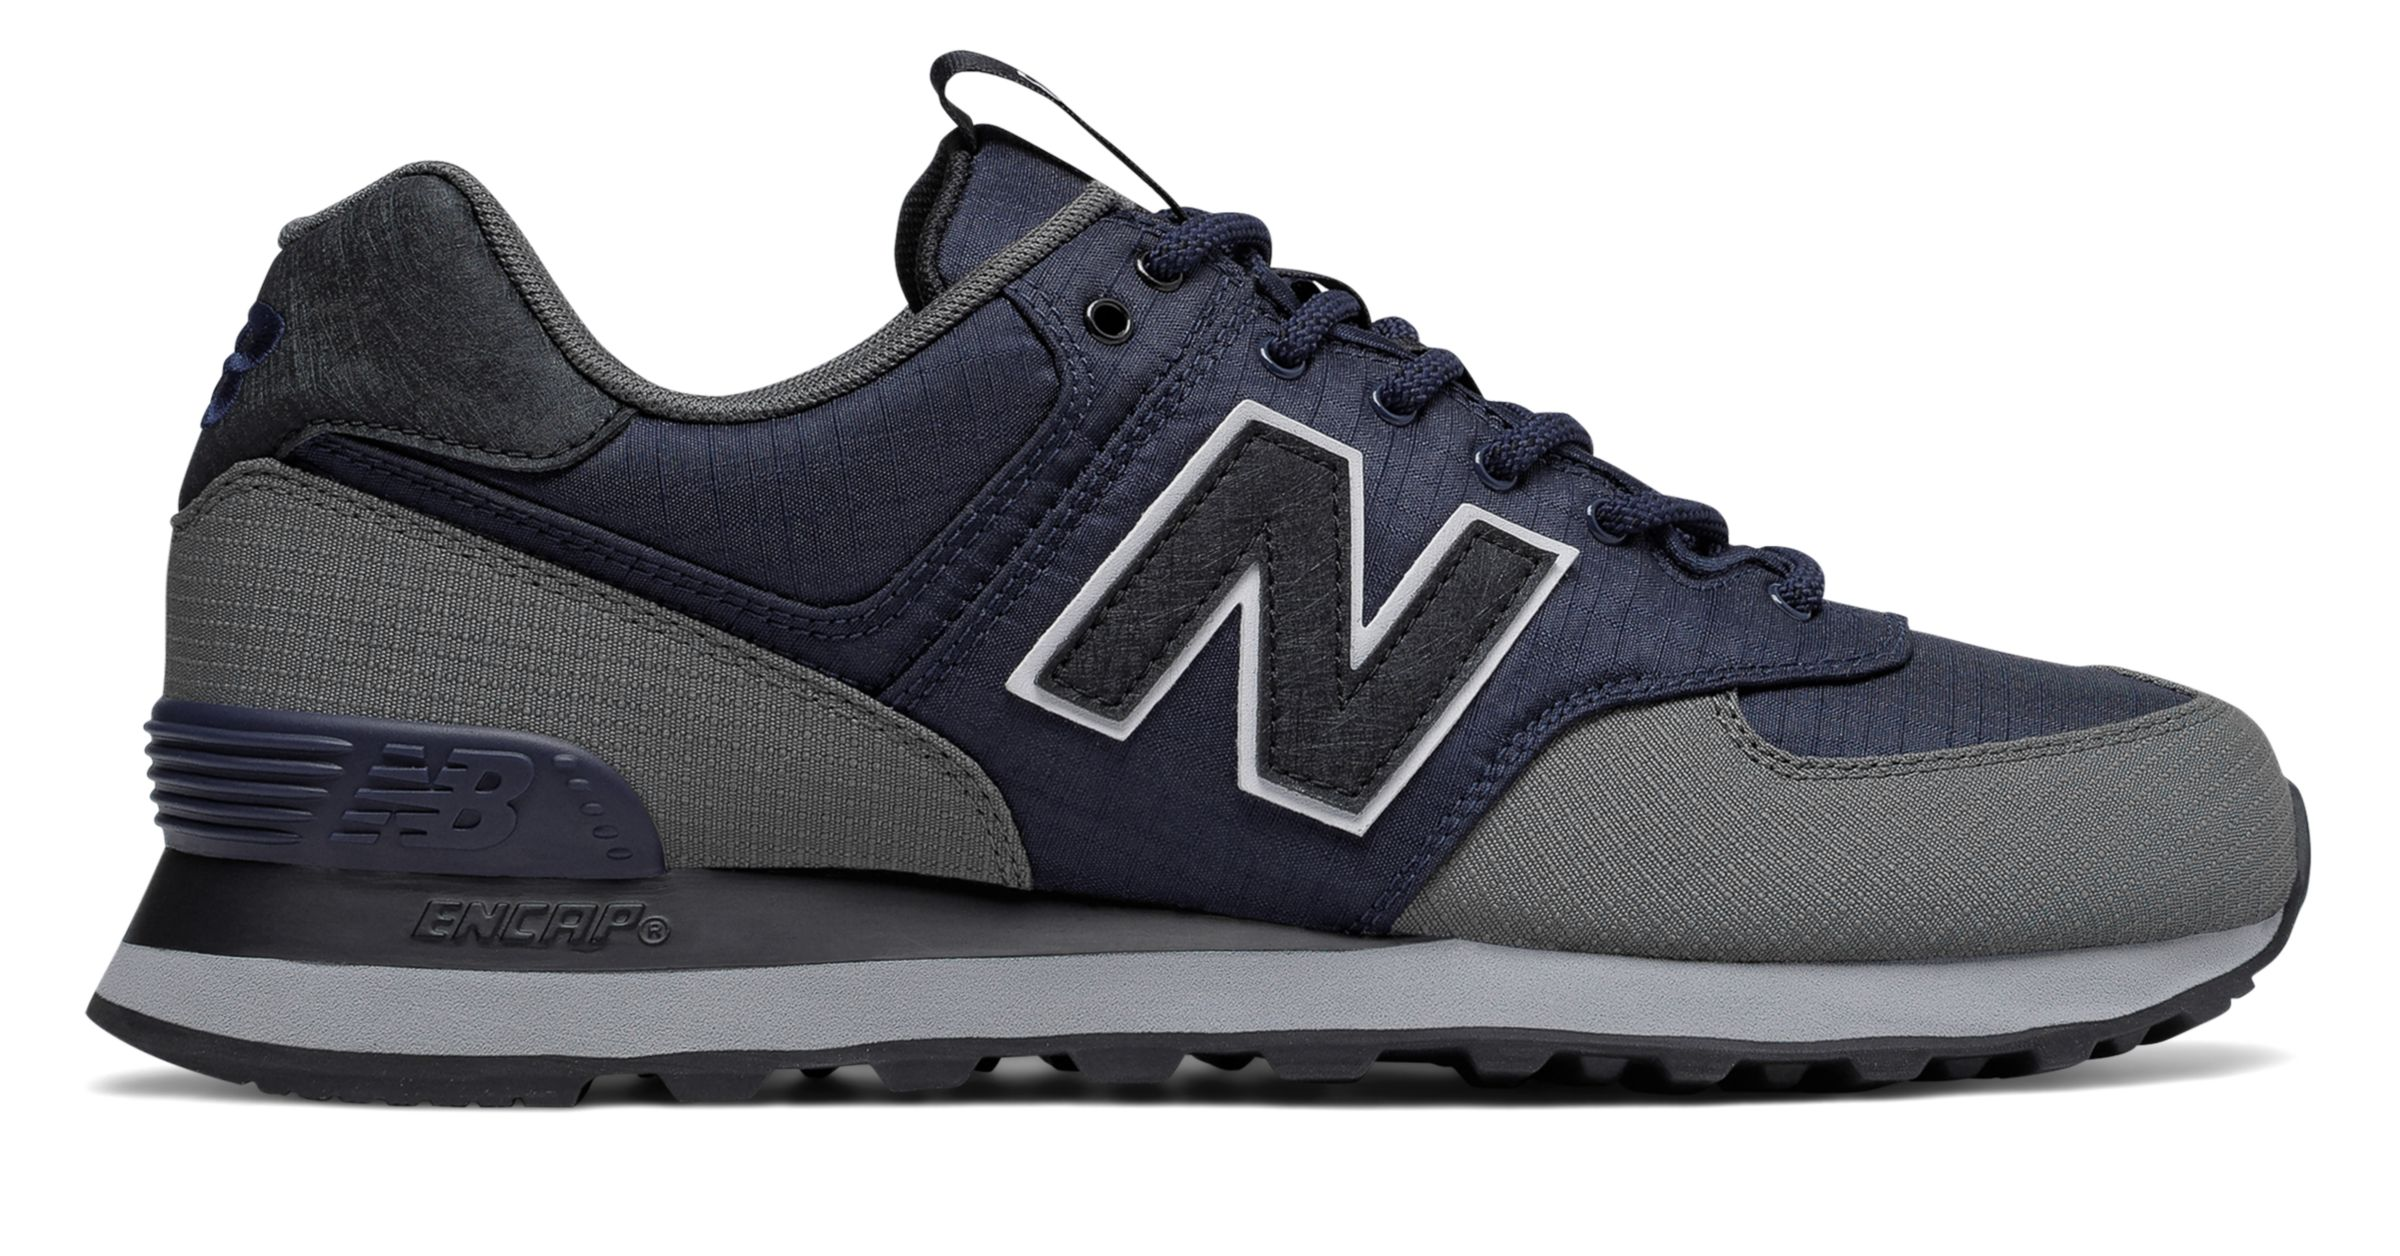 reputable site b22ac 3e38c new balance 574 outdoor escape